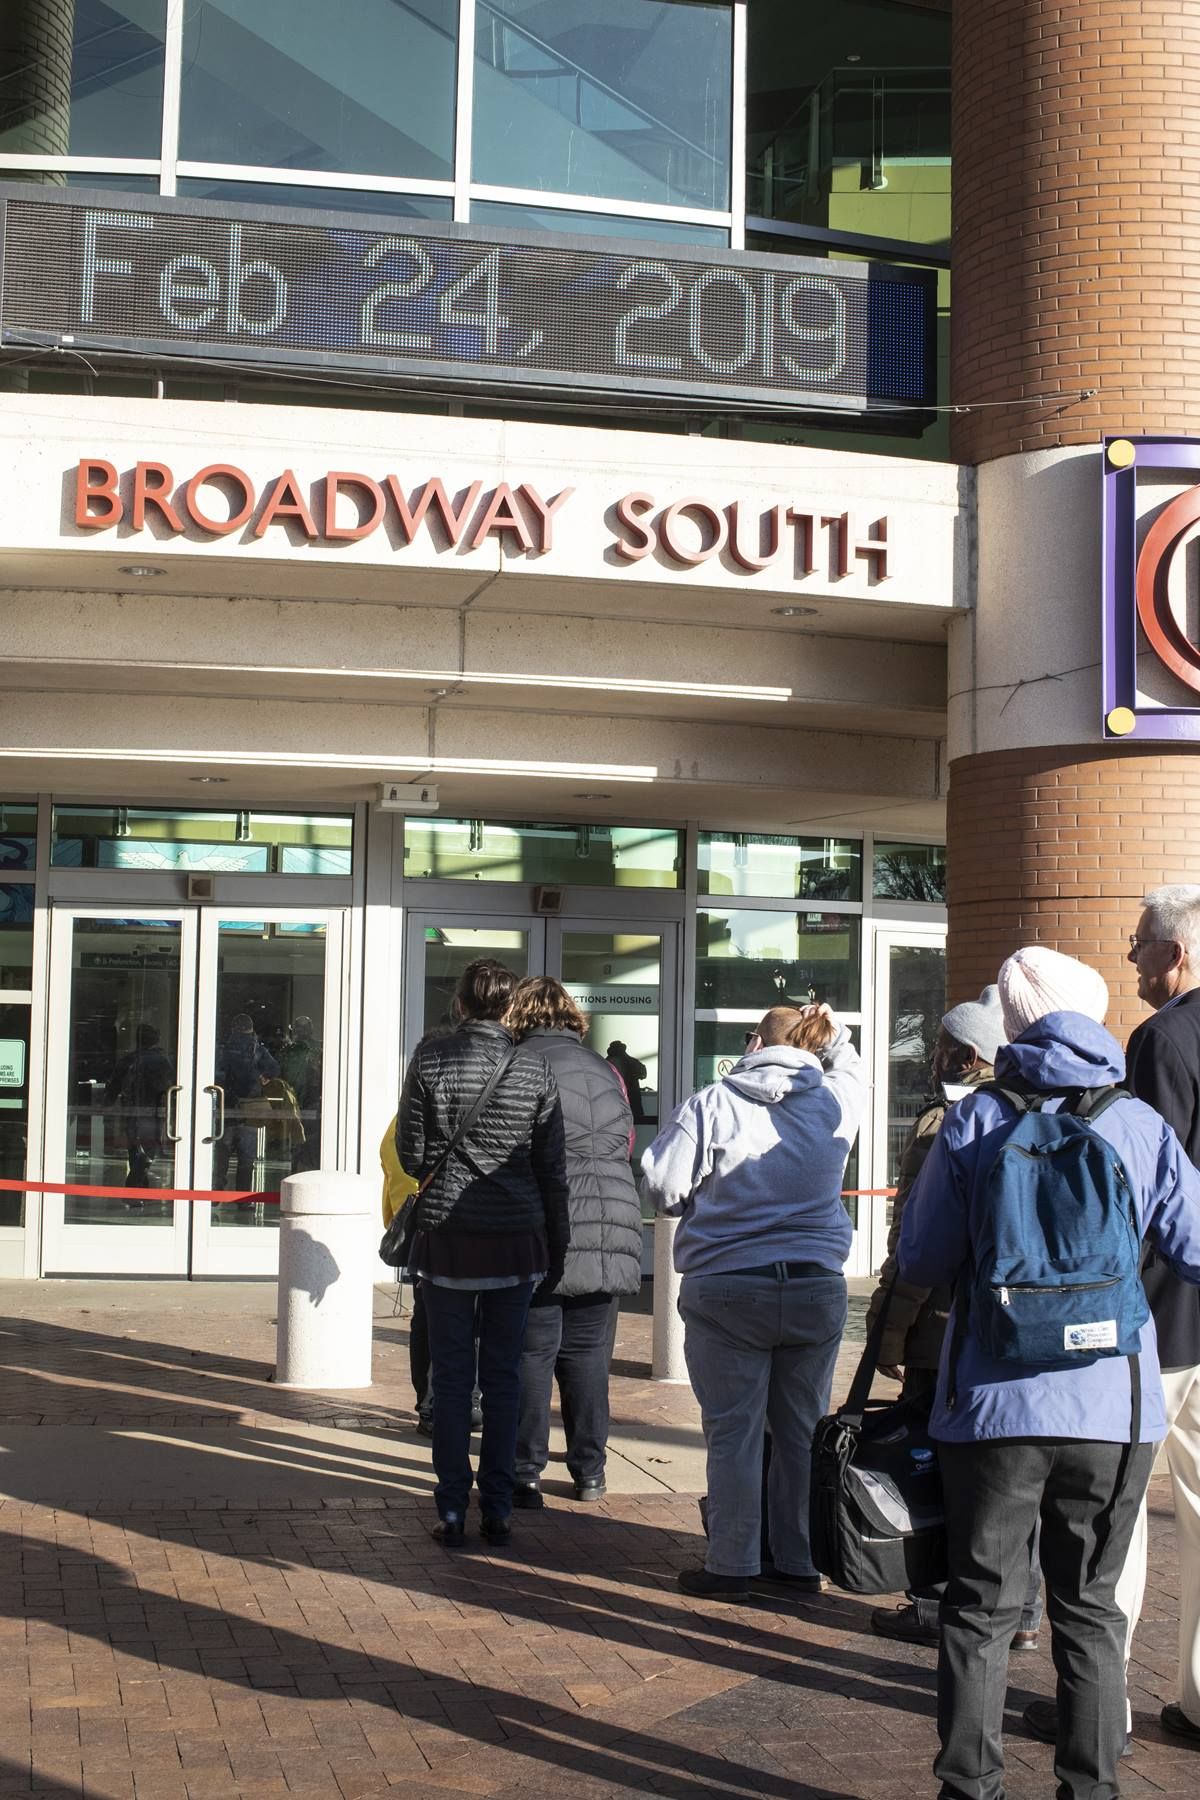 Observers and others stand in line early on Feb. 24, awaiting a security check that will allow them into St. Louis' America's Center for a session of the 2019 General Conference. Some 3,000 observers had registered by late Feb. 23. Photo by Kathleen Barry, UMNS.